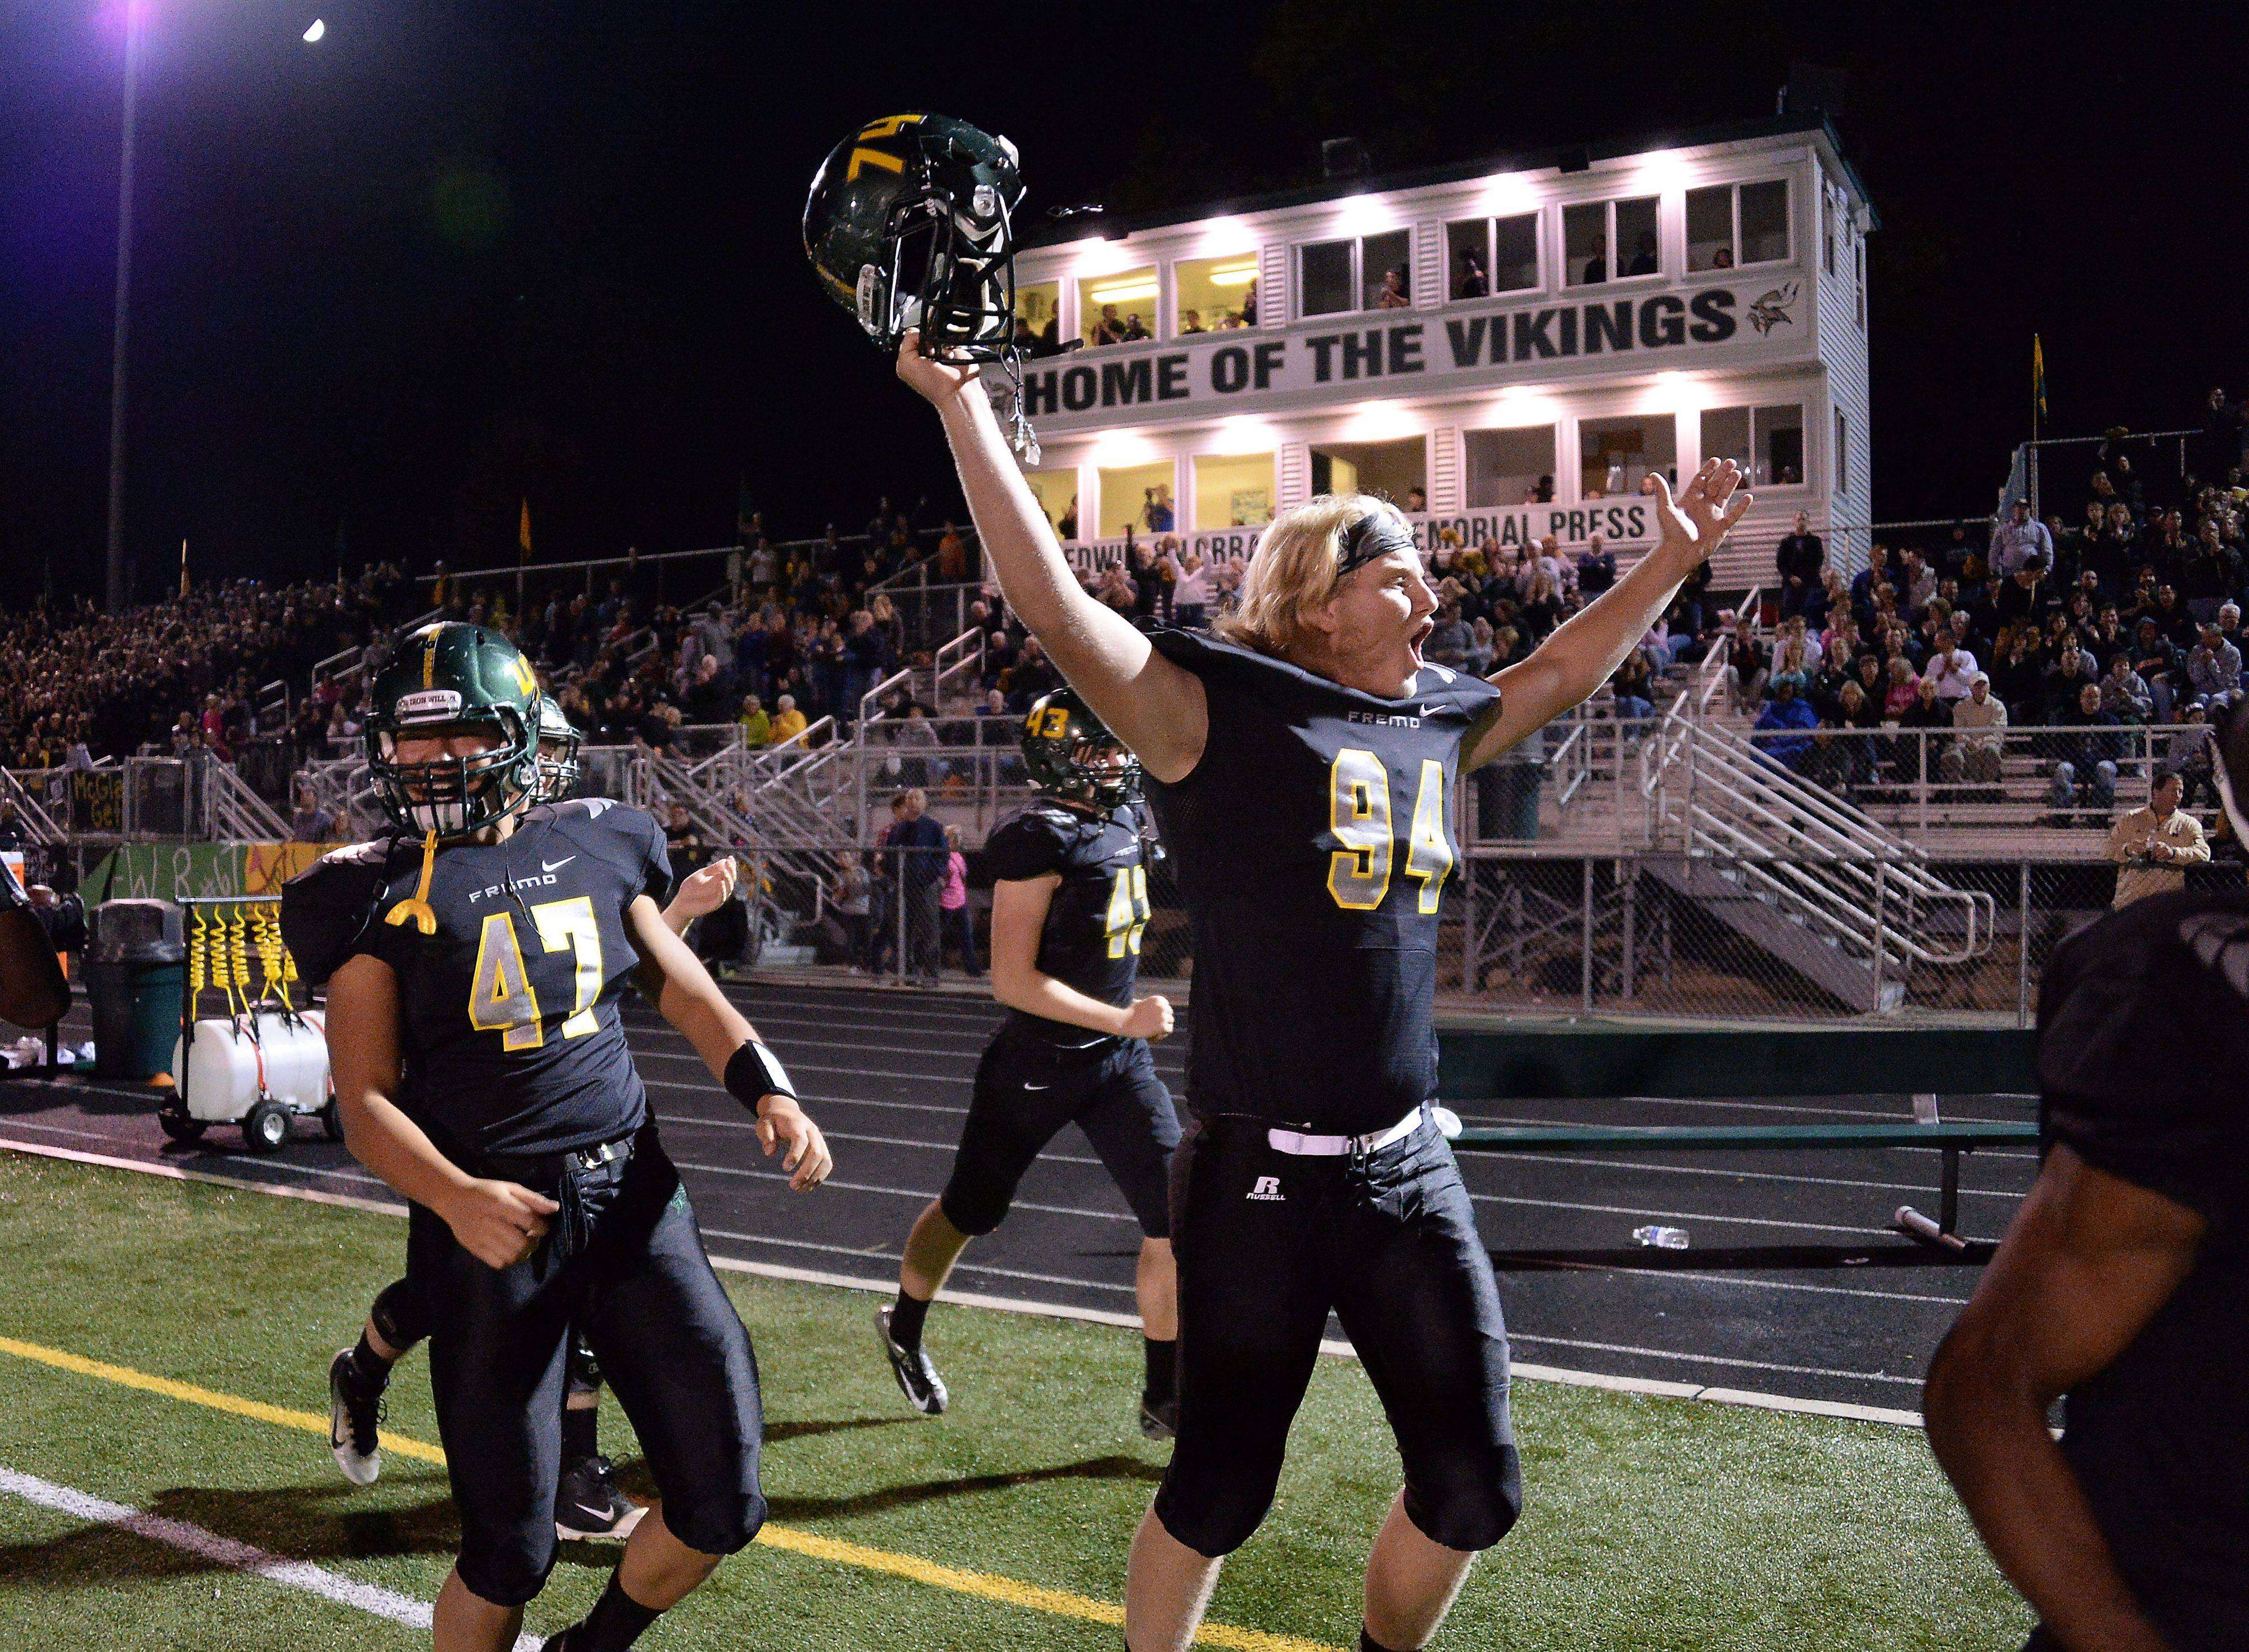 Jack Albrecht and his Fremd teammates start to celebrate against visiting Palatine in the fourth quarter Friday night at Fremd.